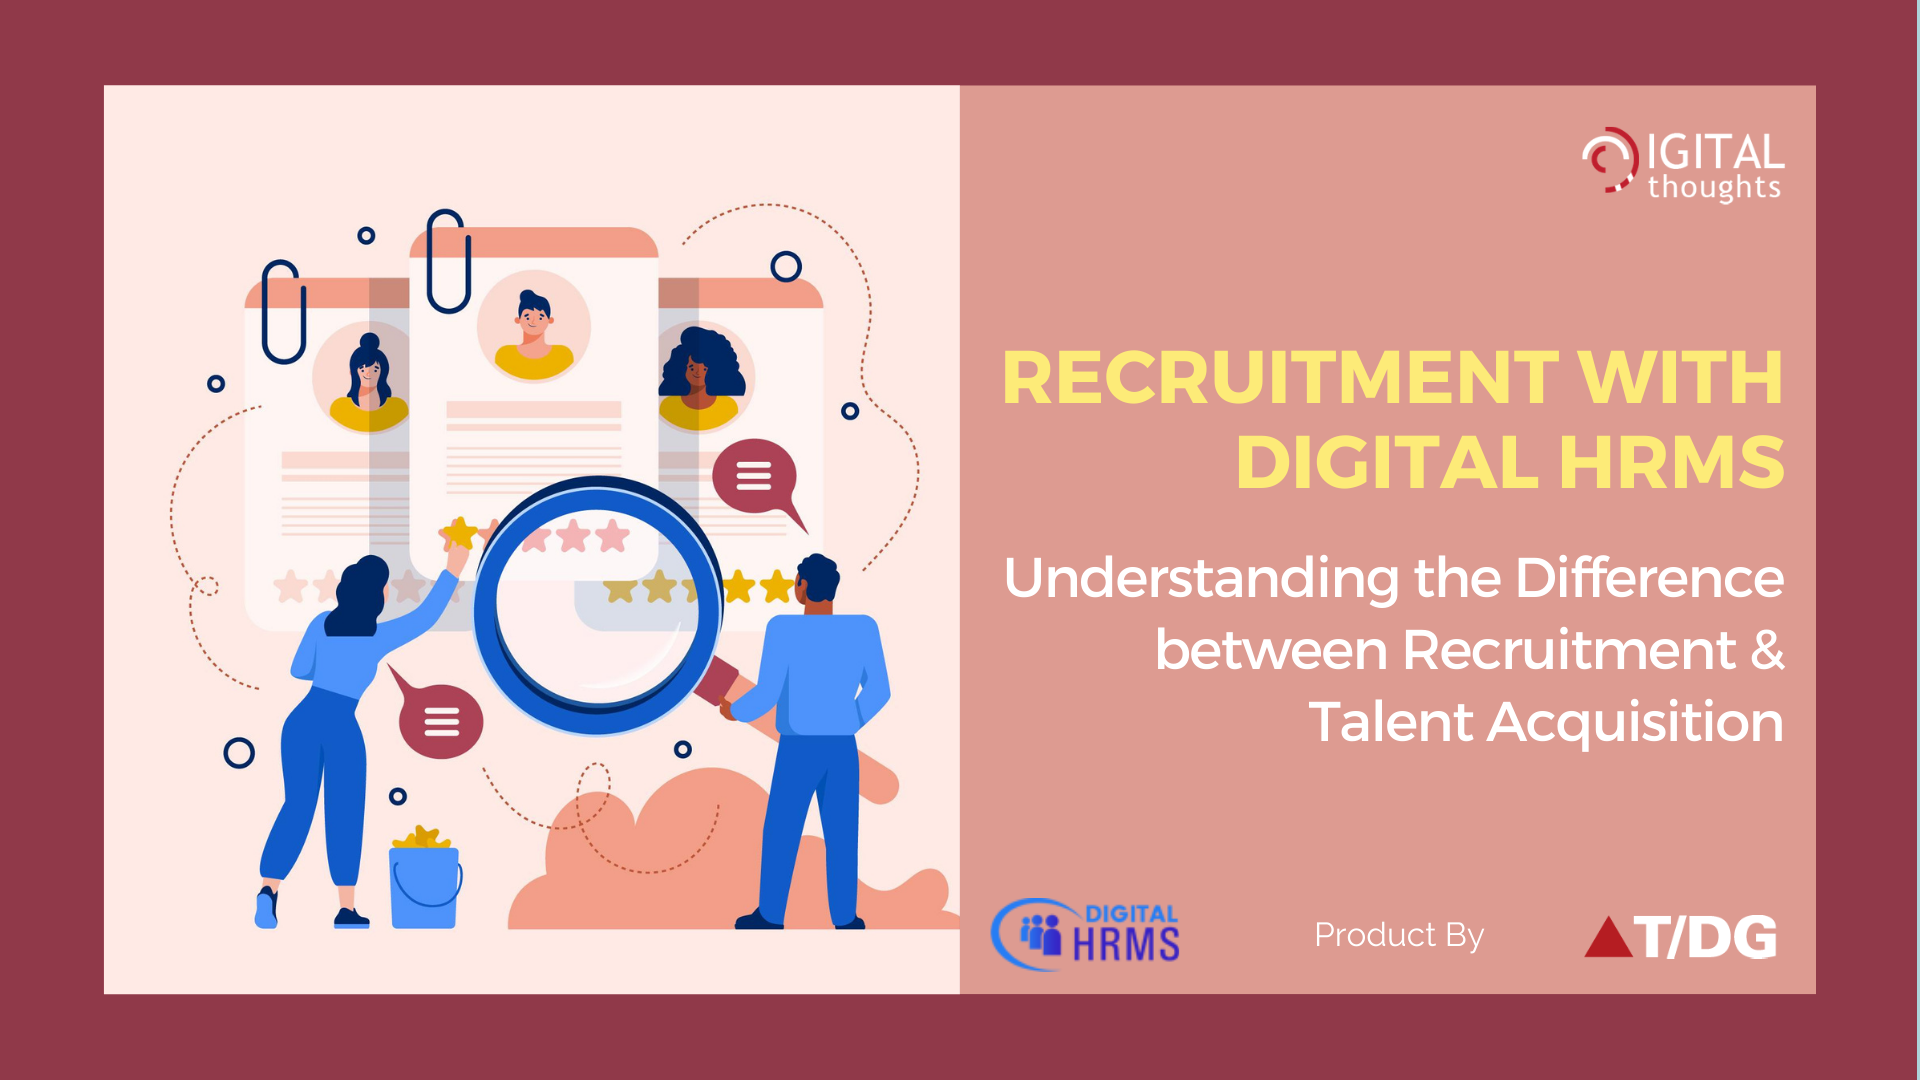 Recruitment with Digital HRMS: Understanding the Difference between Recruitment & Talent Acquisition